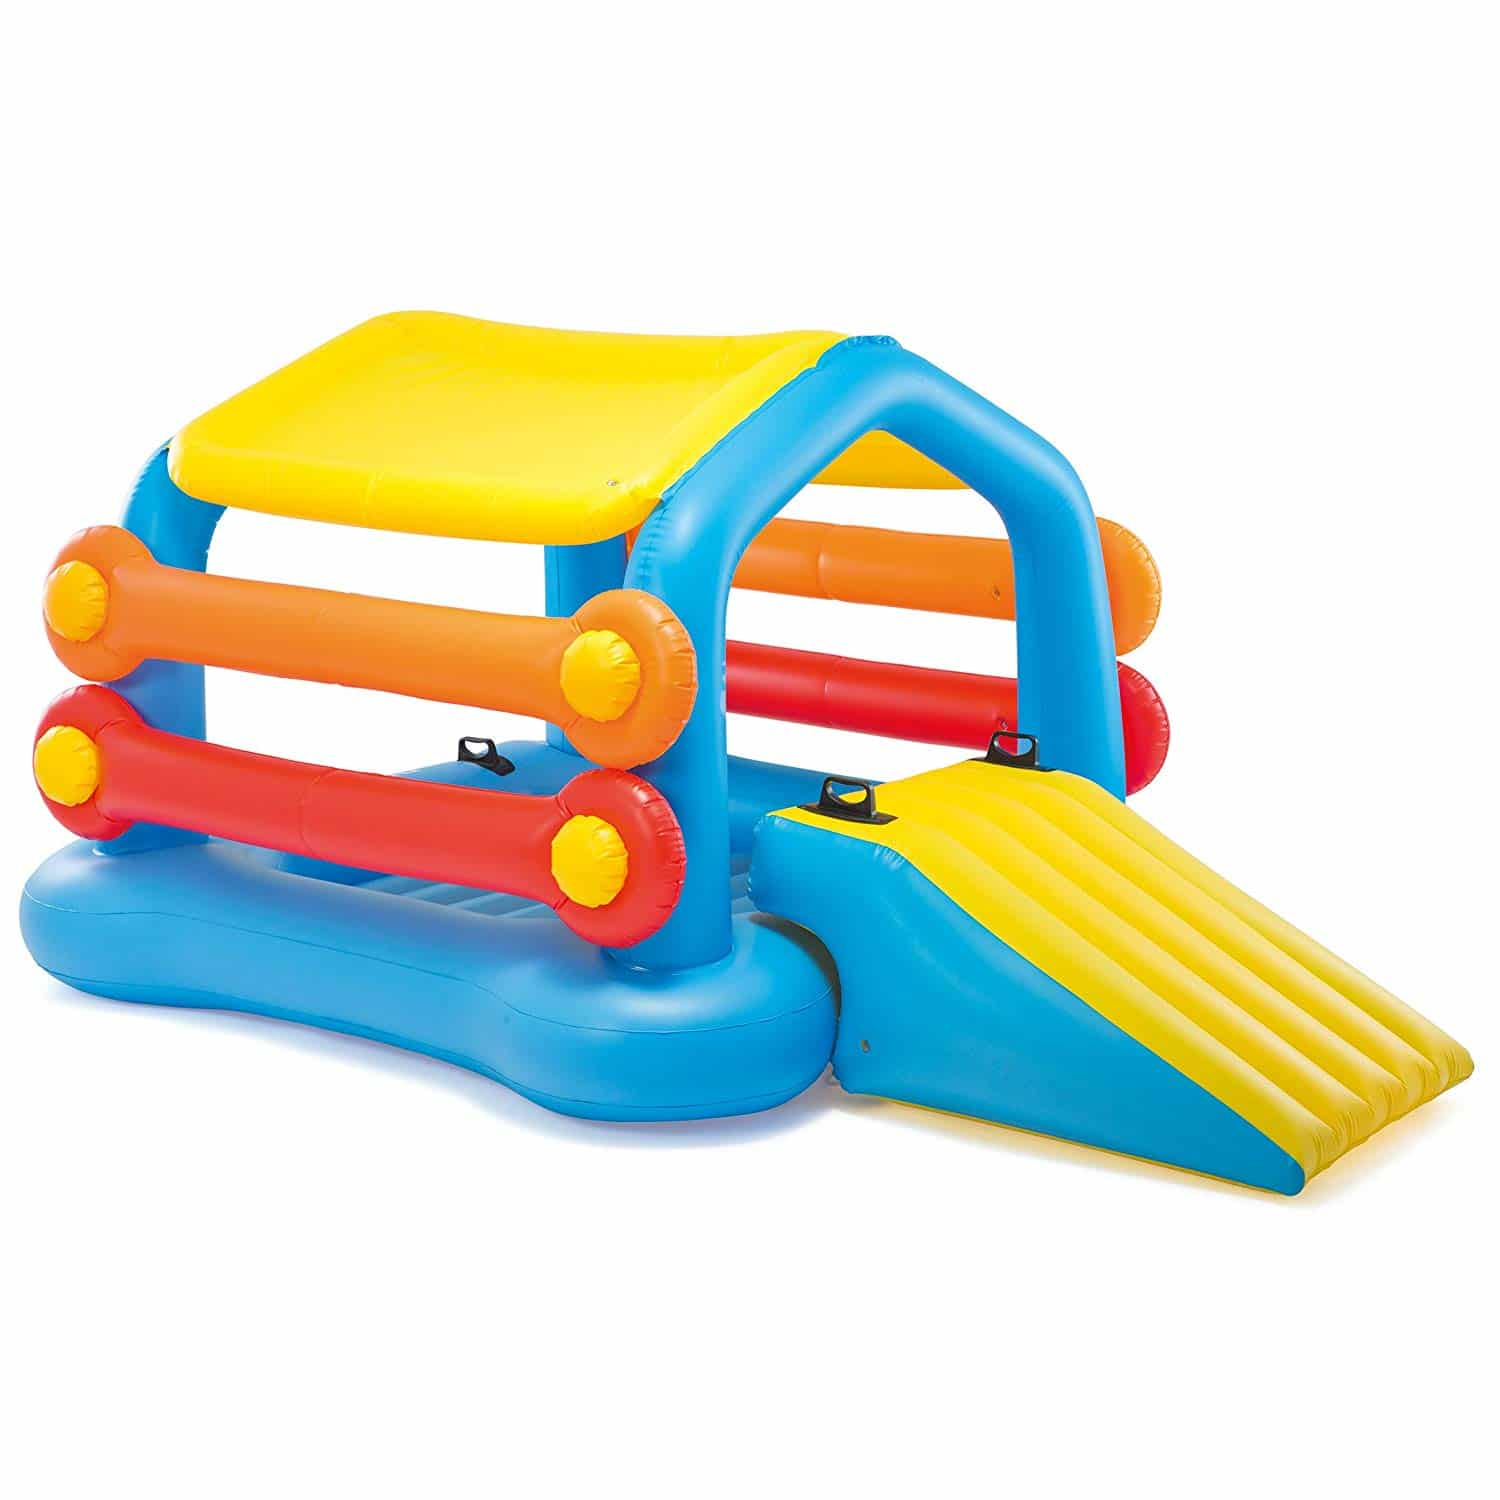 Intex Cabin Island with Slide